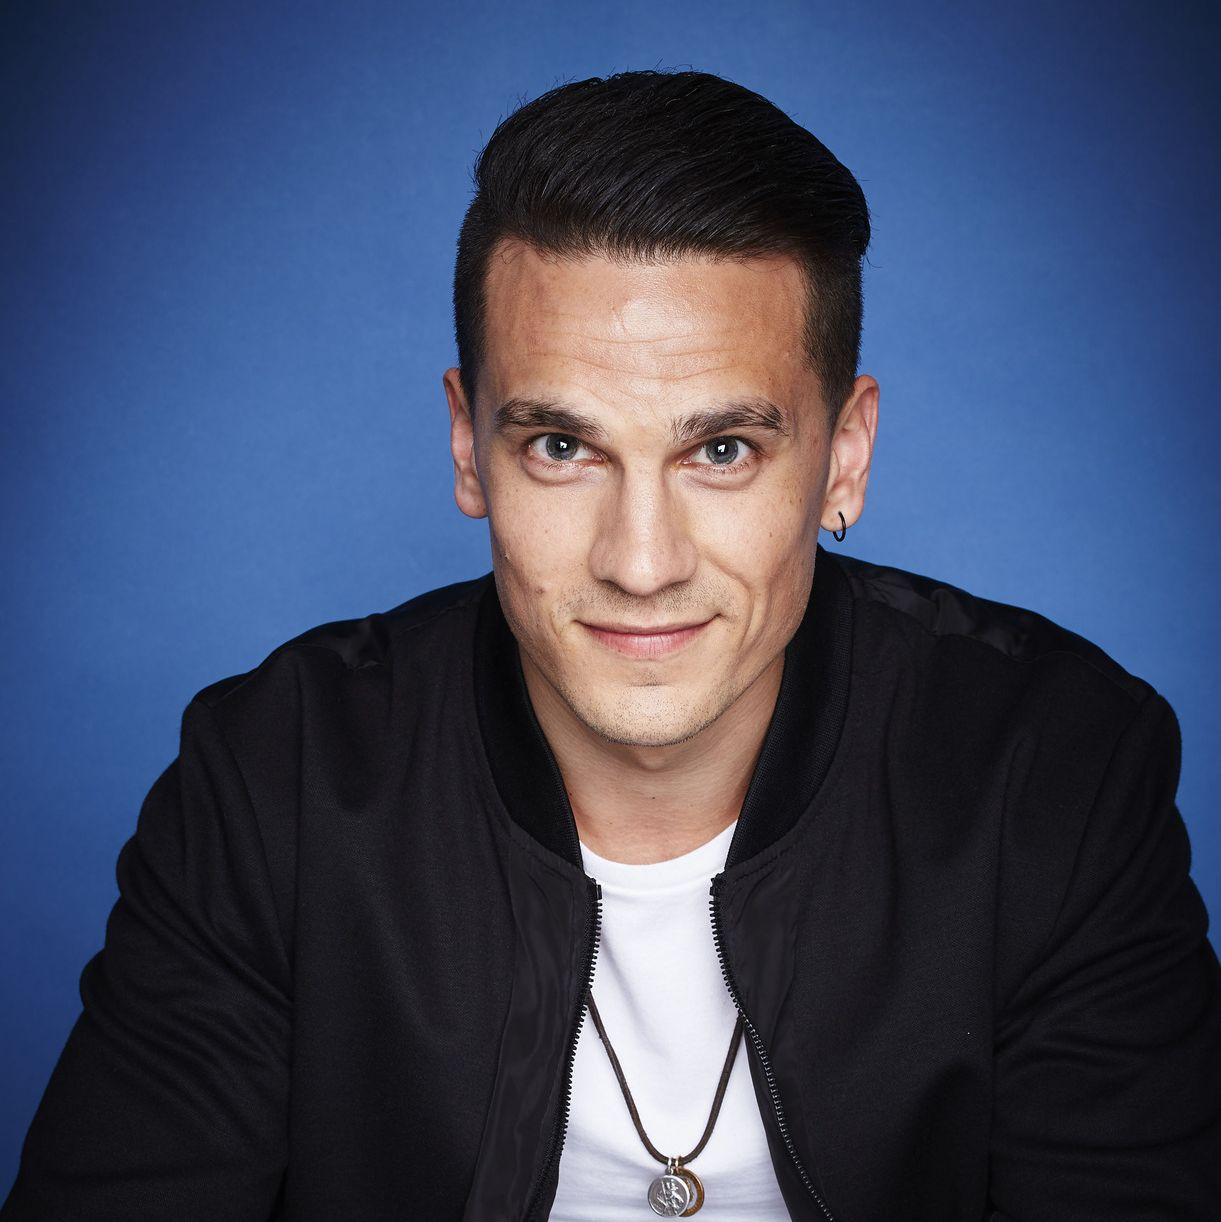 Former EastEnders star Aaron Sidwell announces his engagement